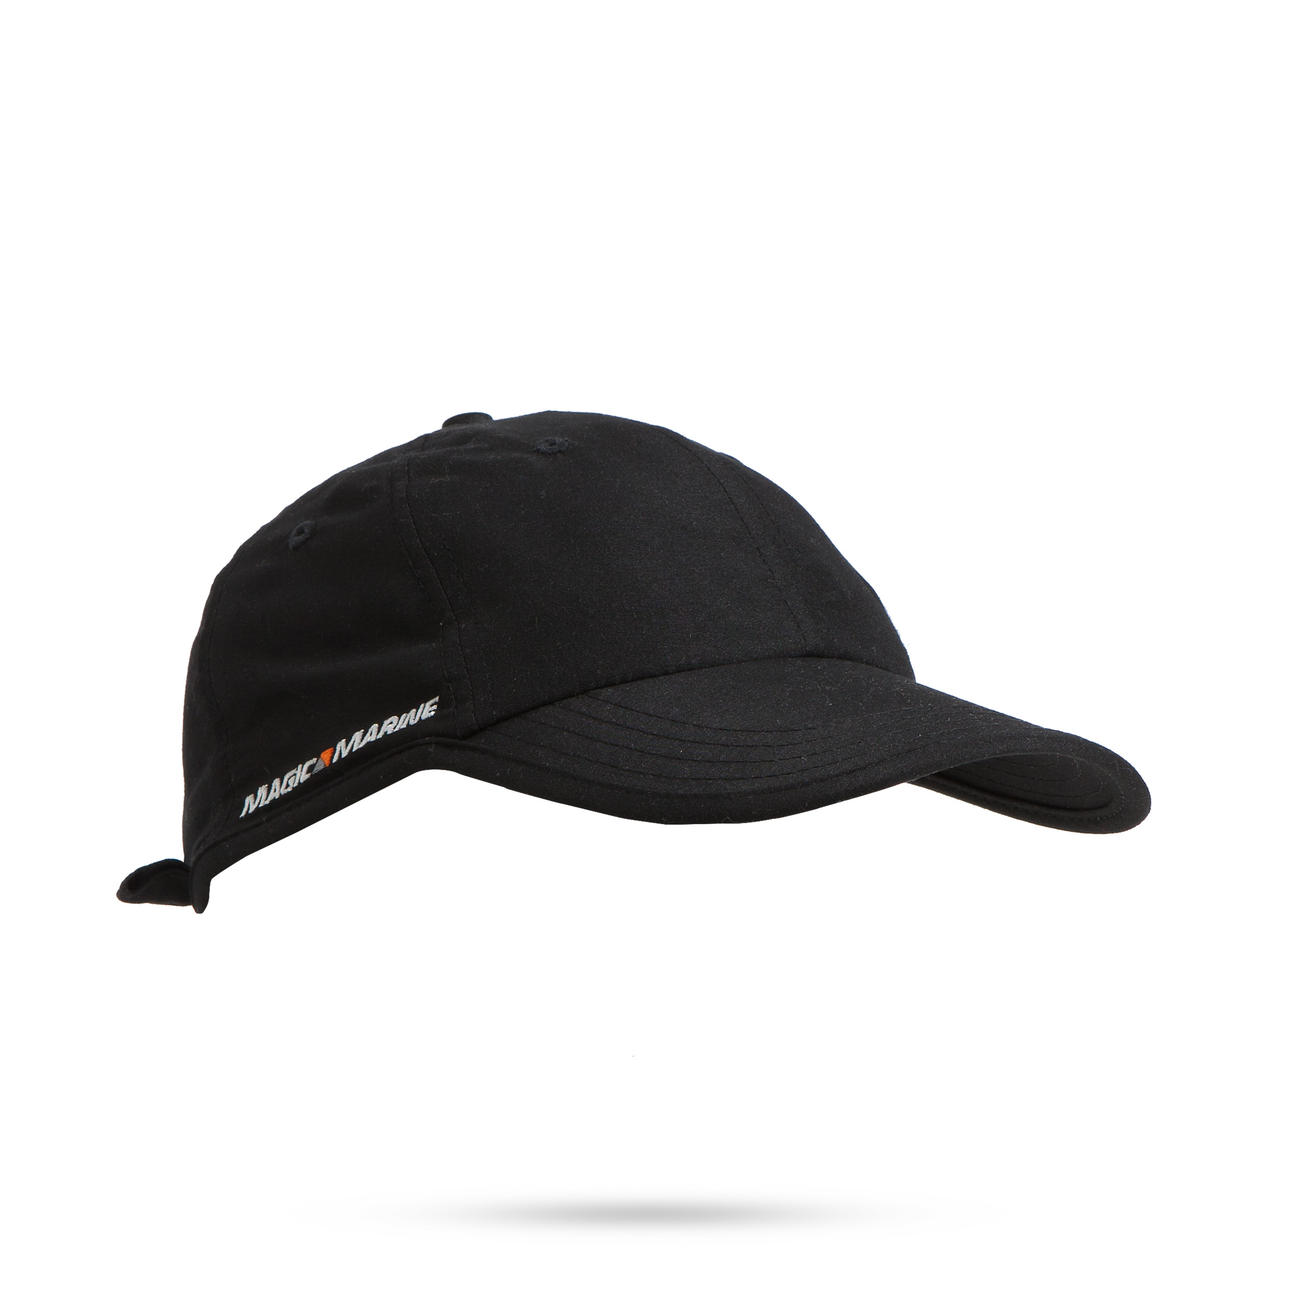 Hurricane Cap Quickdry snap back | unisex